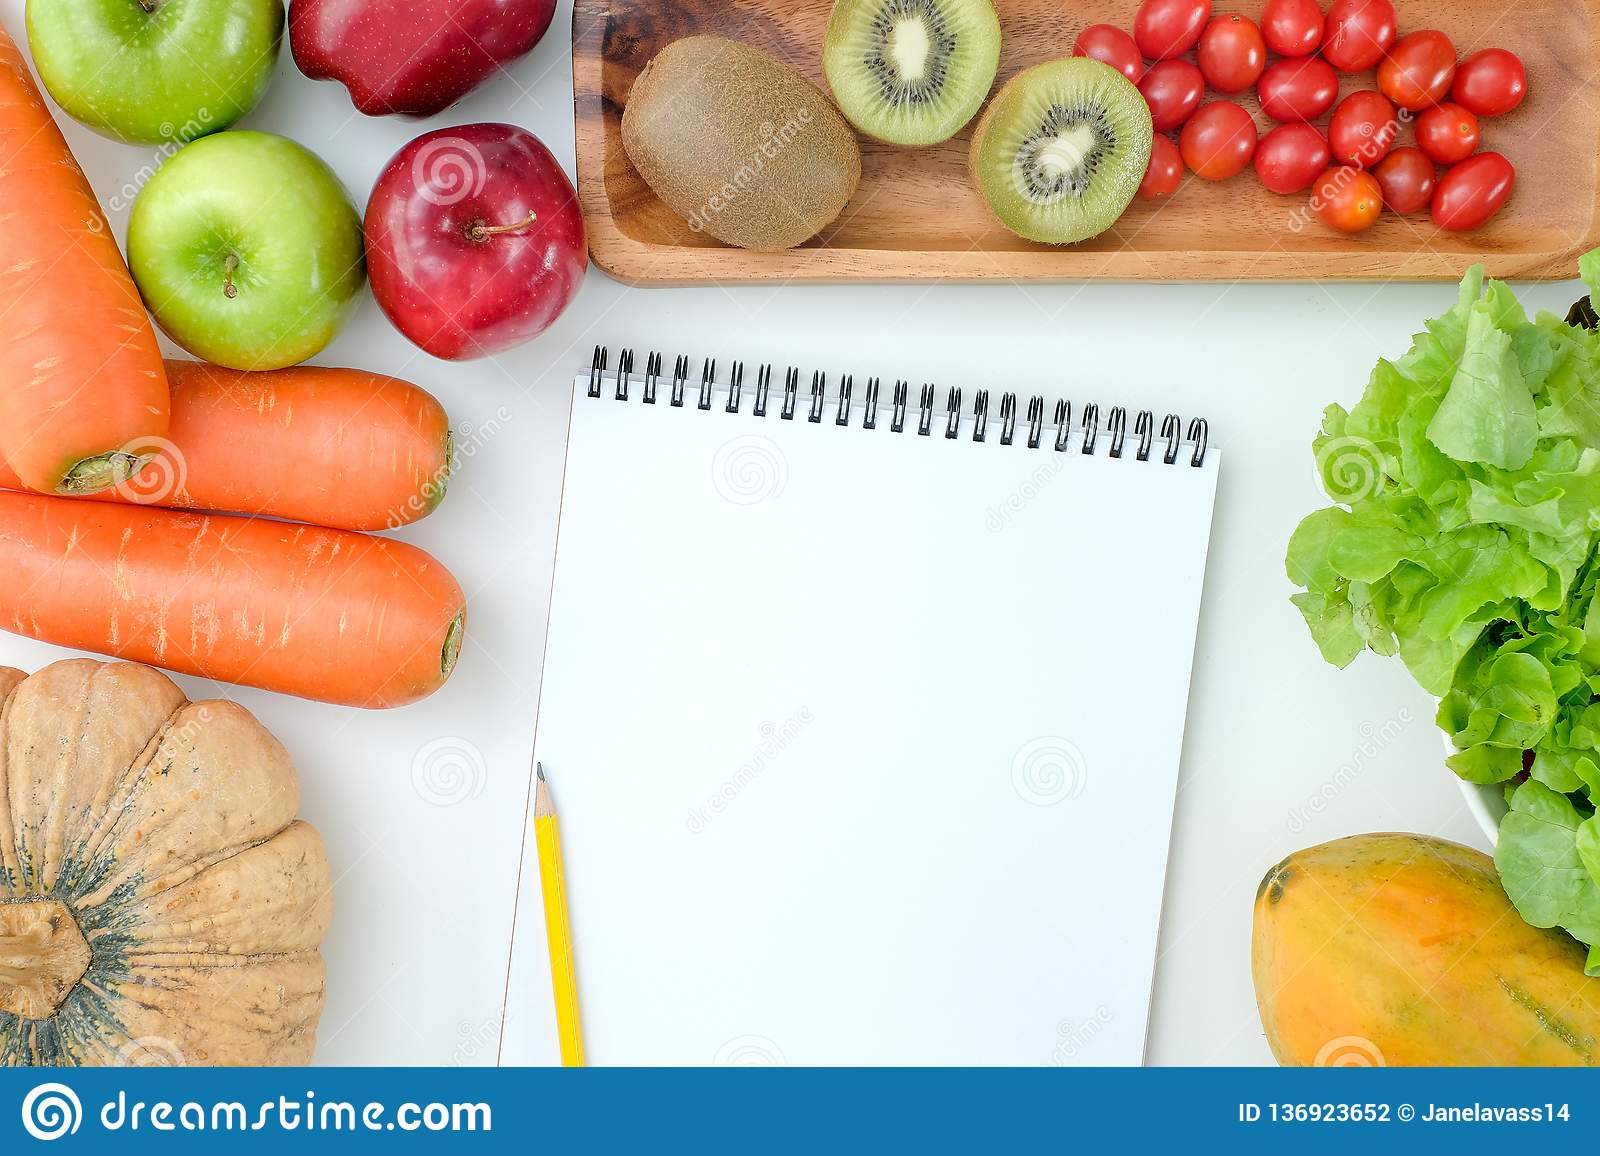 Fat Healthy Weight Loss Healthy Low Carbs Stock Photo